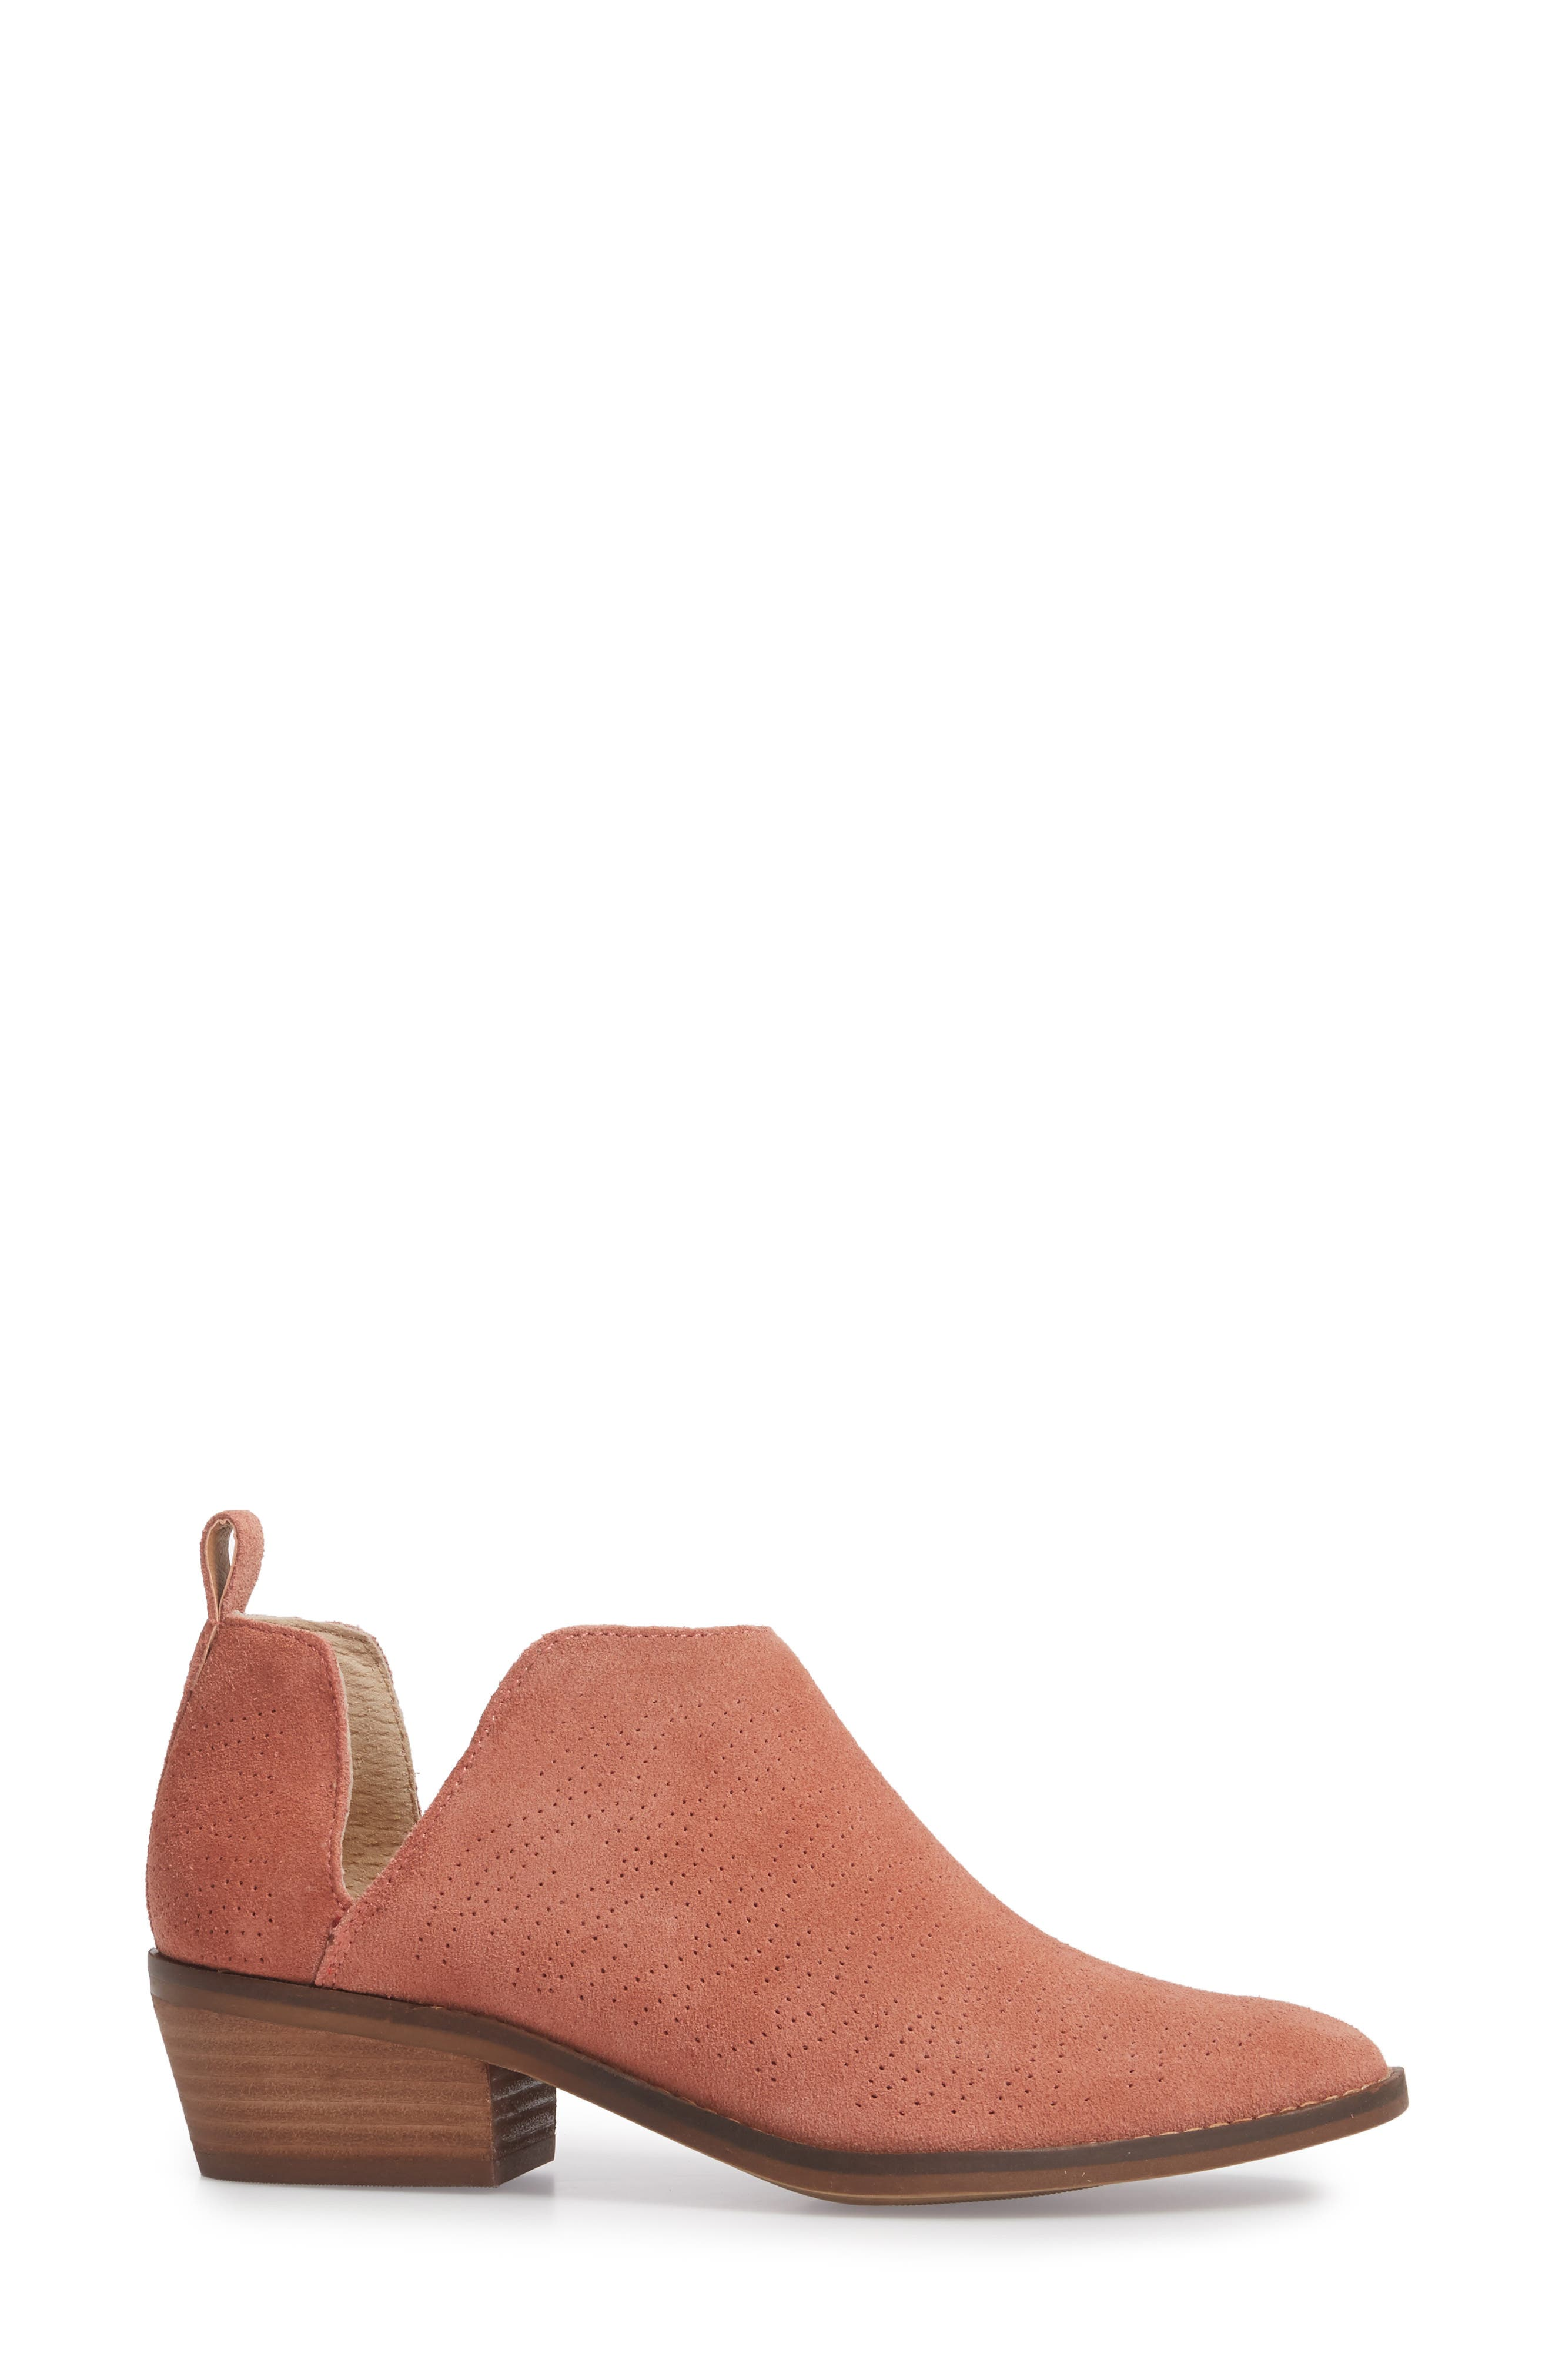 Fayth Bootie,                             Alternate thumbnail 3, color,                             Canyon Rose Suede